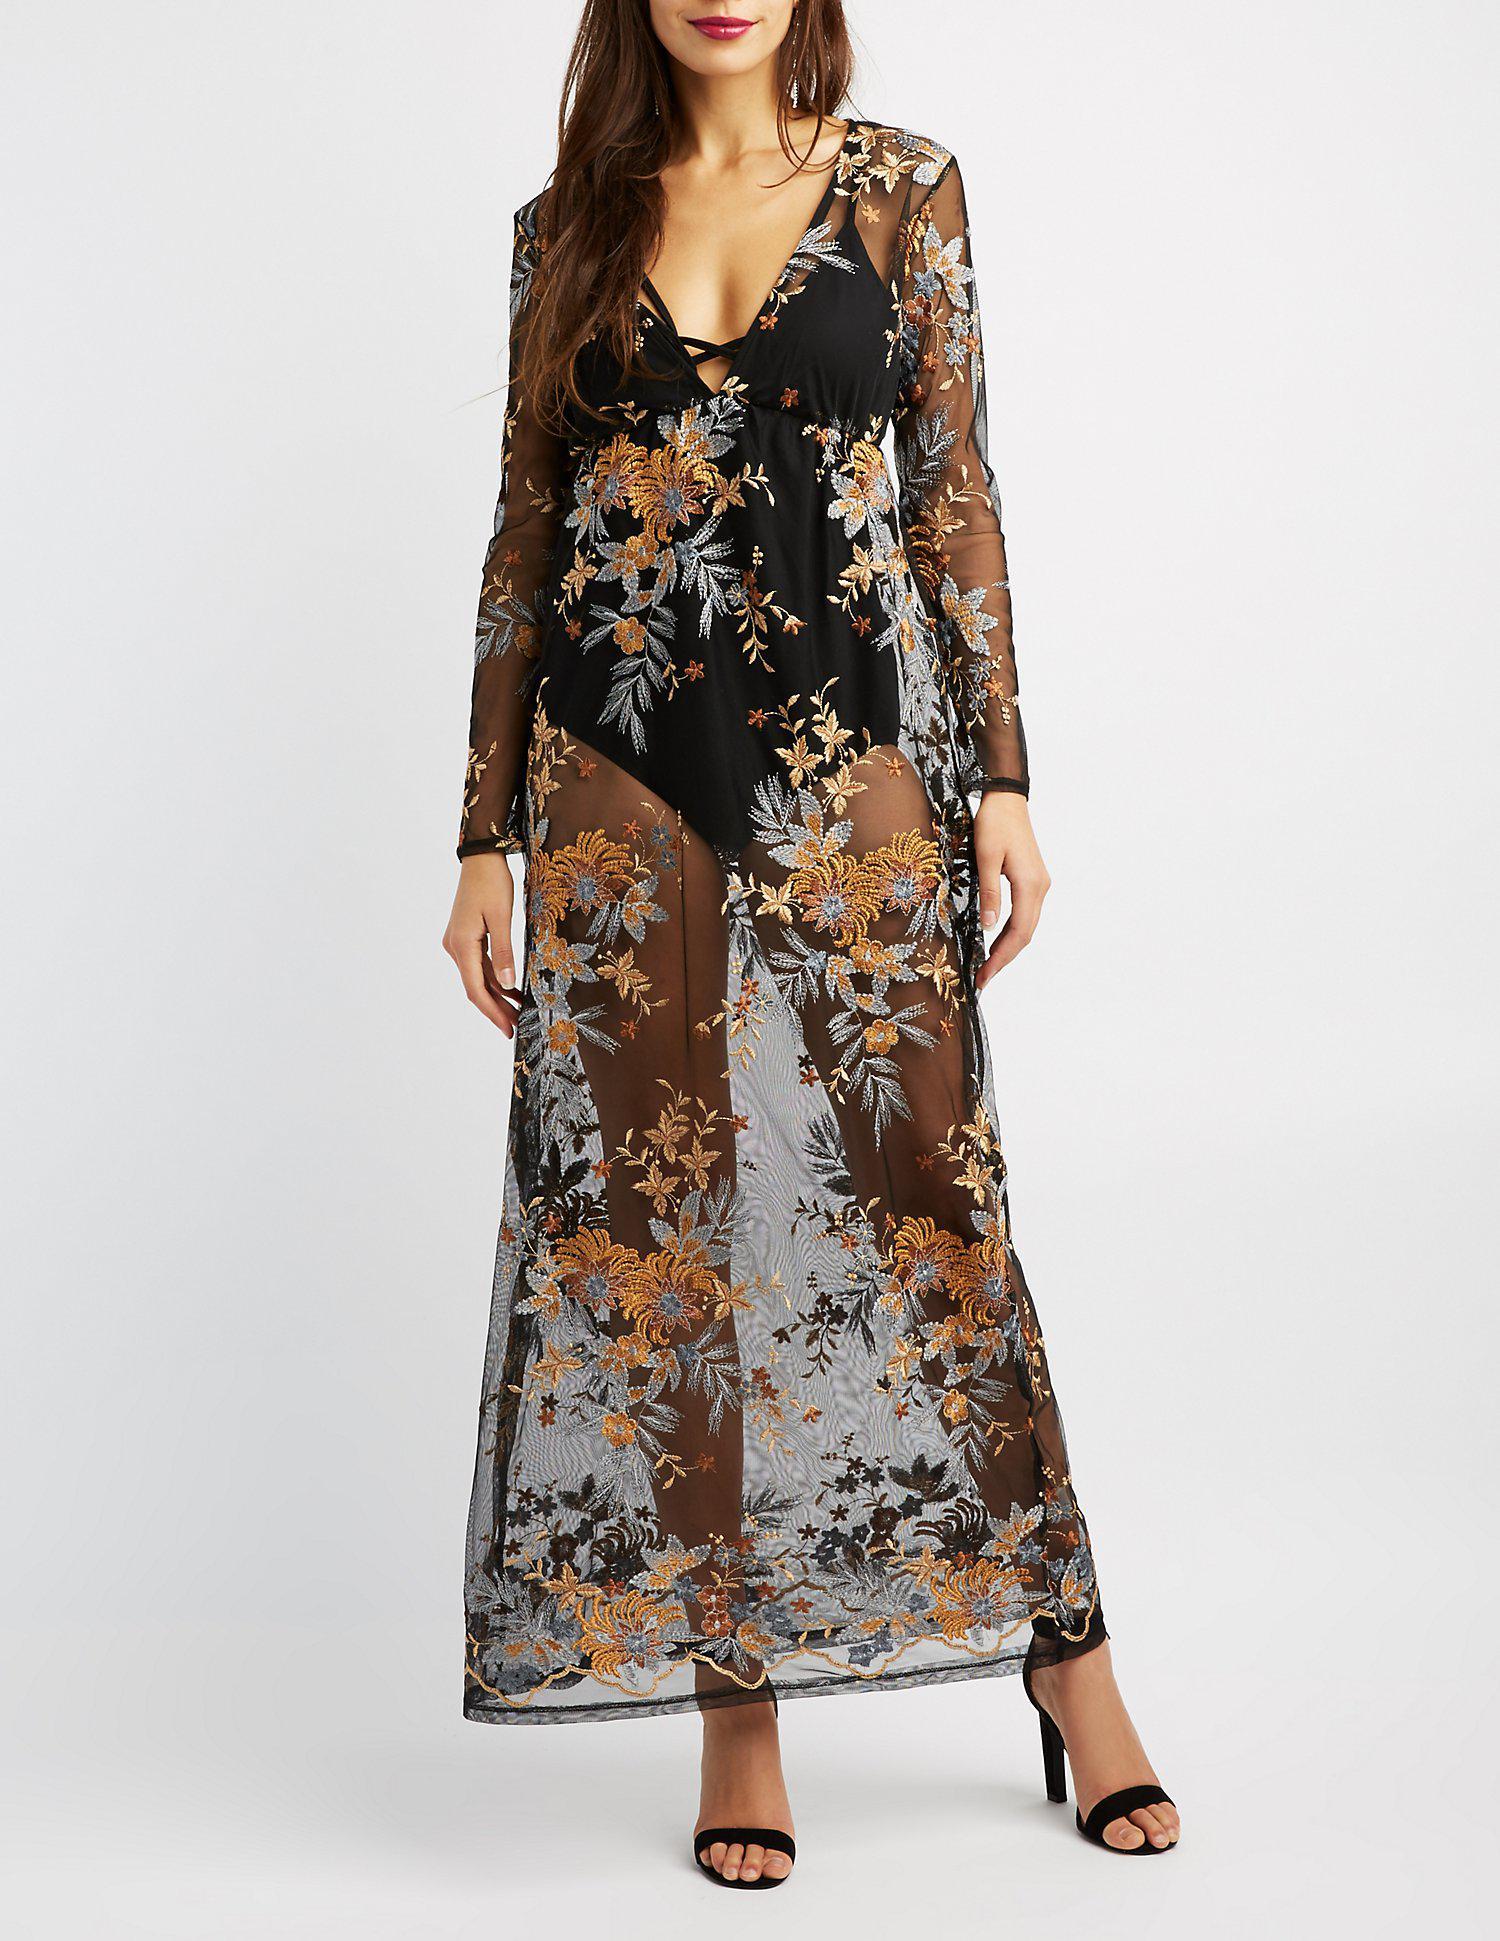 a5a4806e801 Lyst - Charlotte Russe Floral Embroidered Mesh Maxi Dress in Black